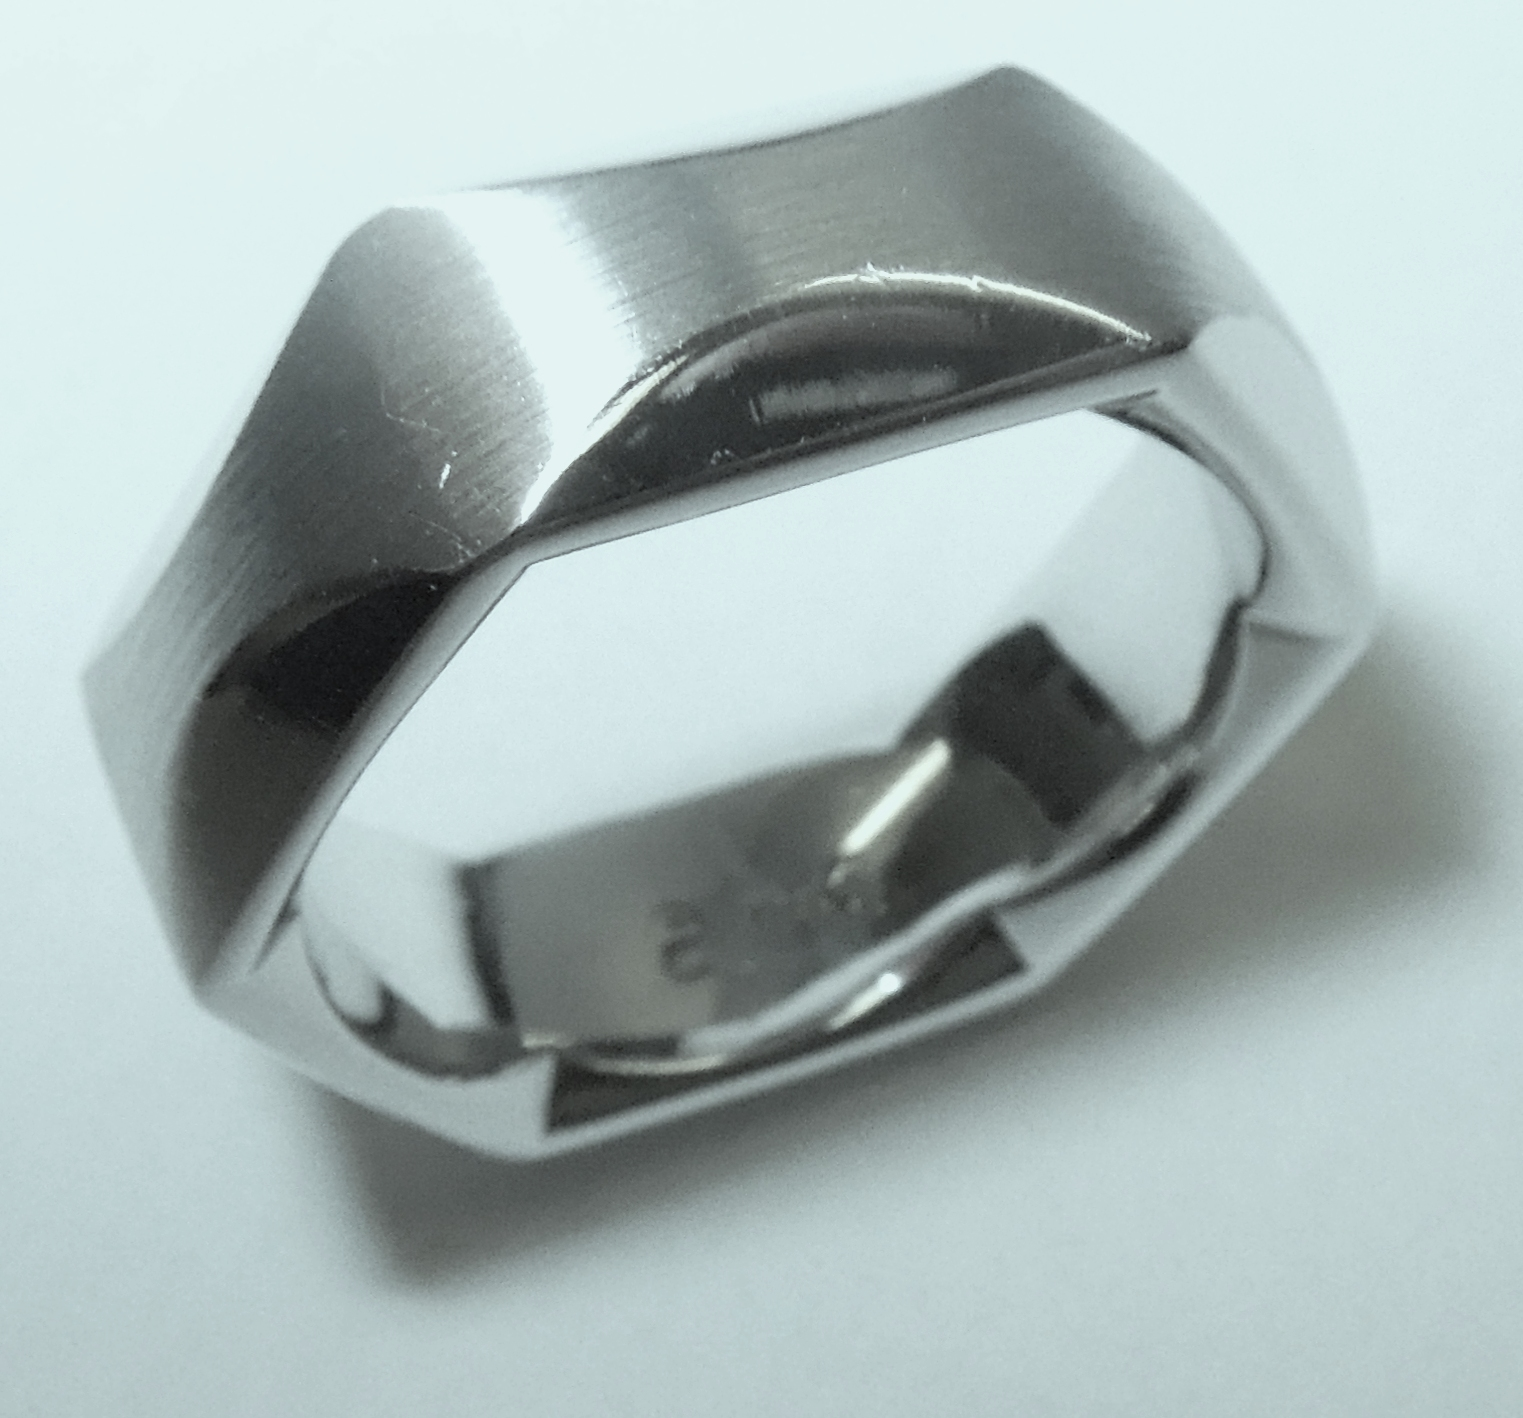 unique-modern-design-gents-band-mens-wedding-ring-craft-revival-jewelry-store-grand-rapids